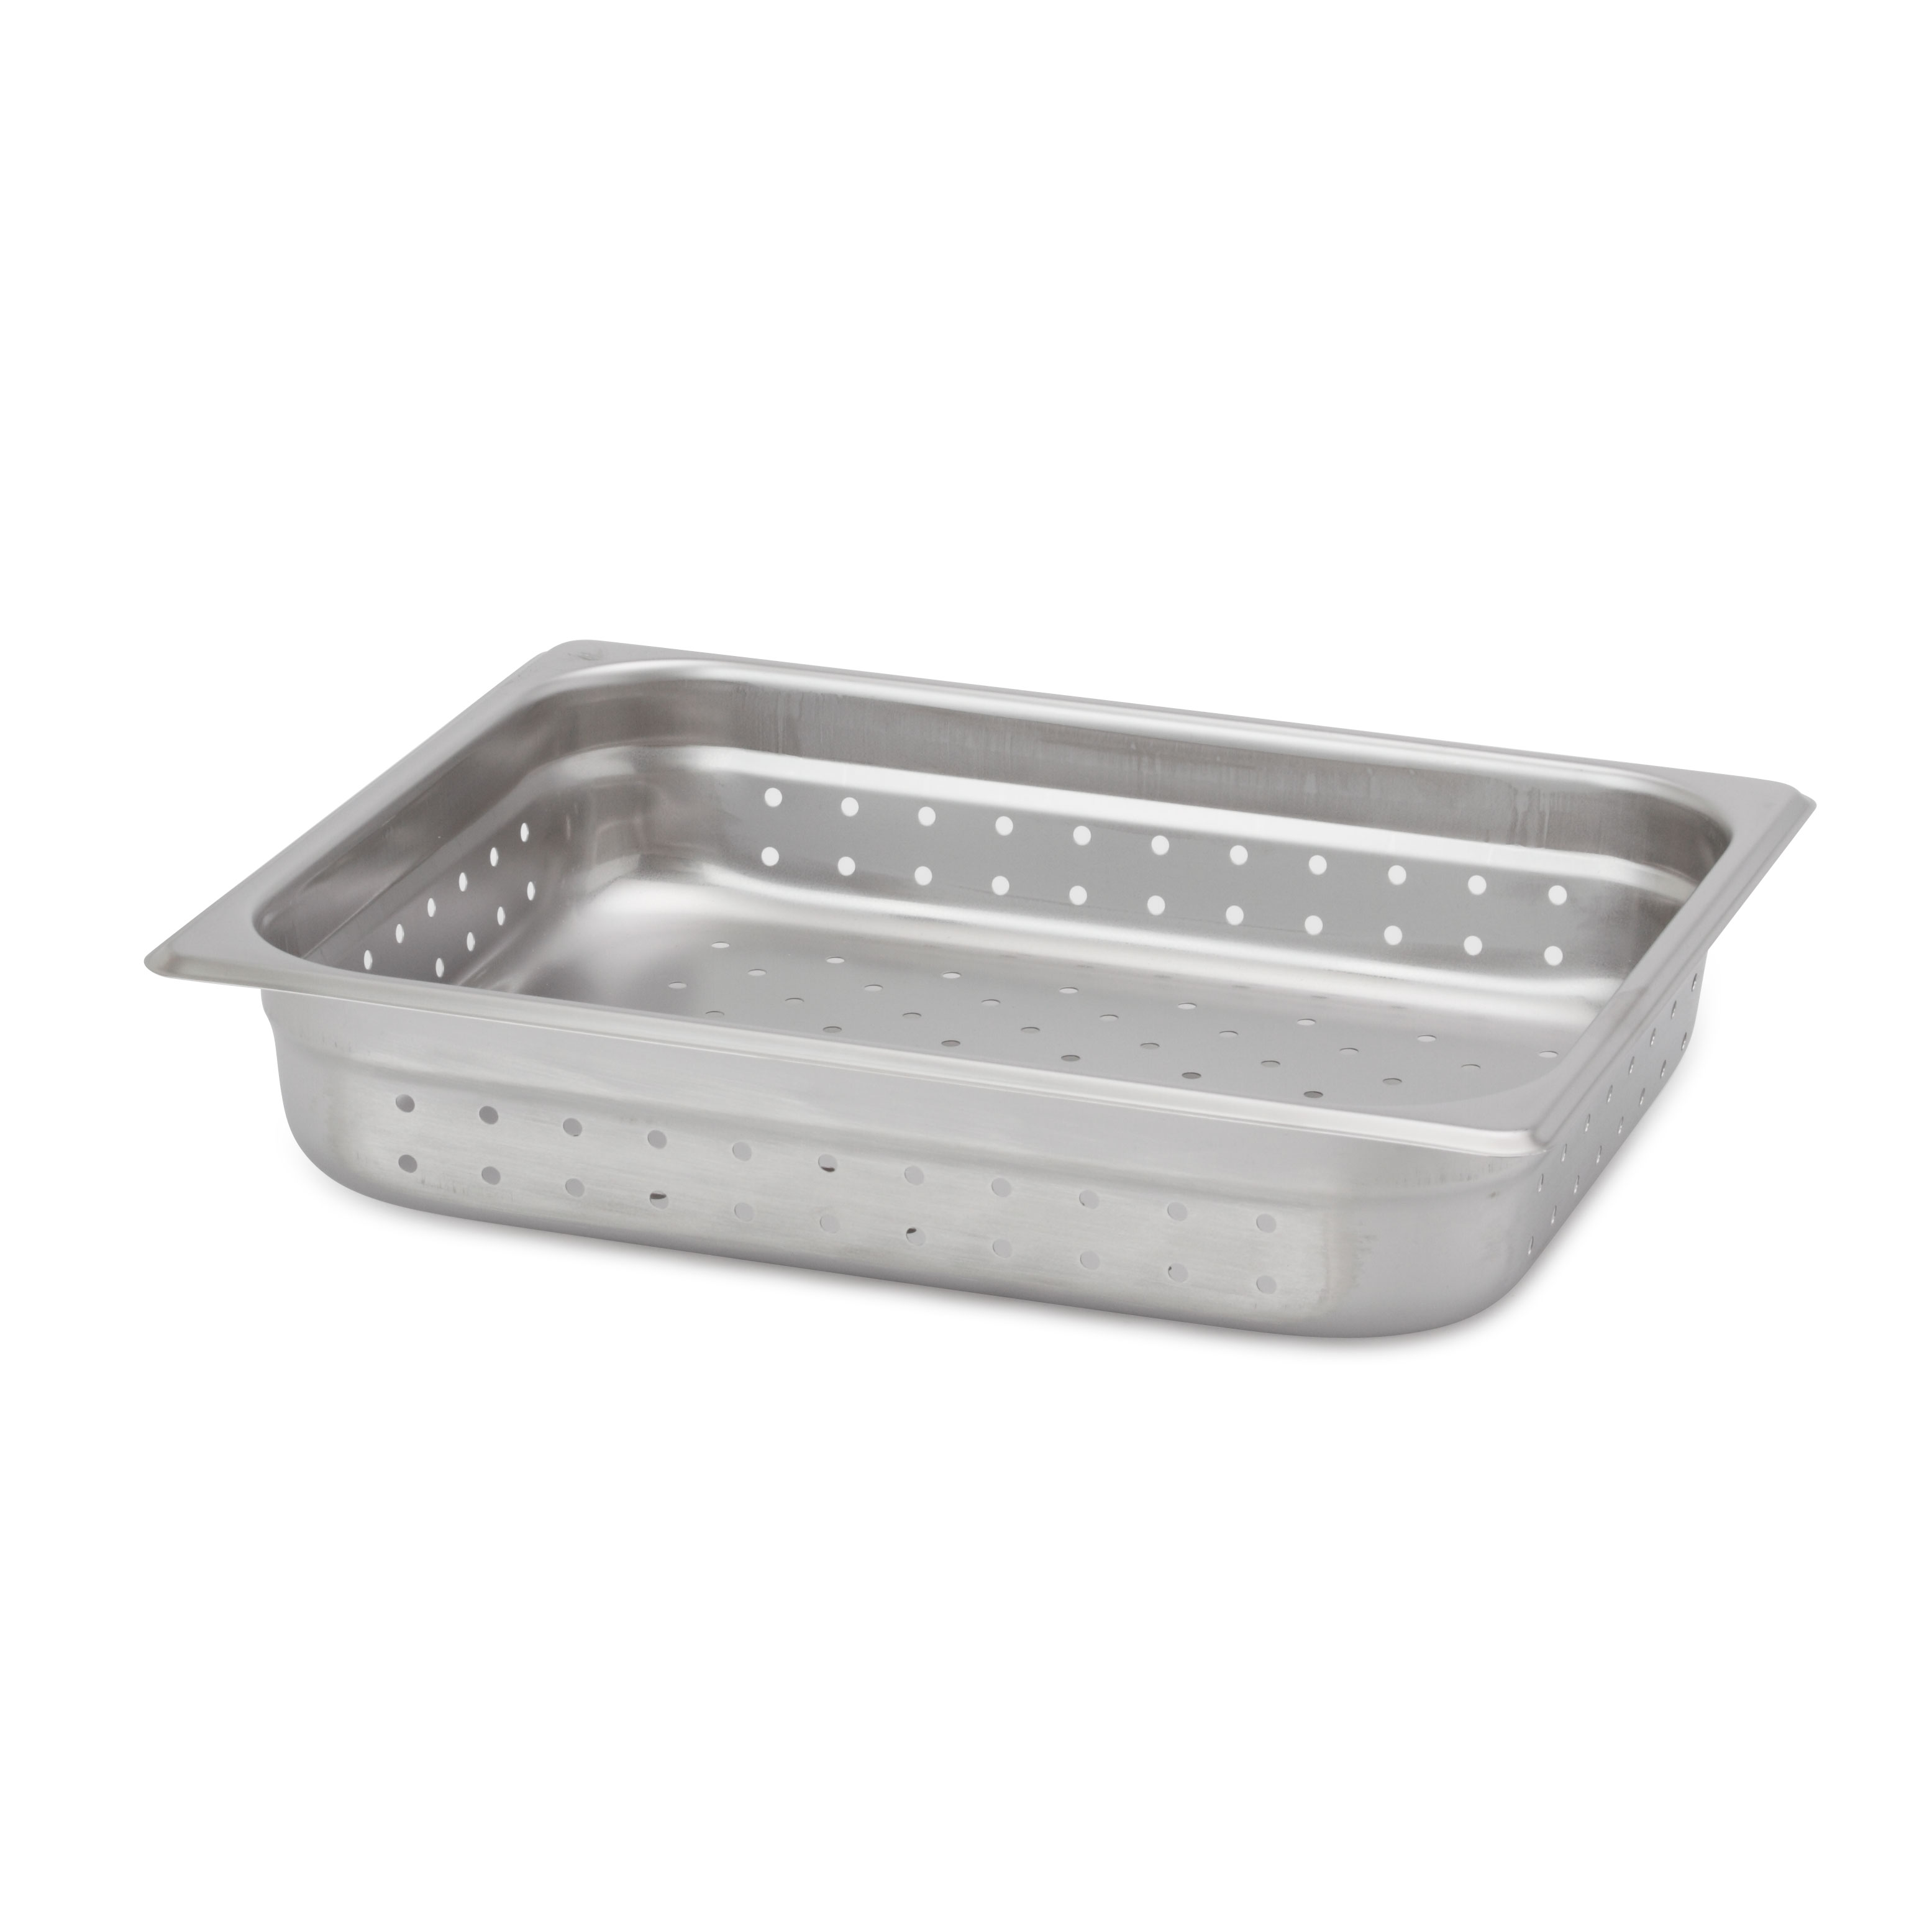 Royal Industries ROY STP 1202 P steam table pans